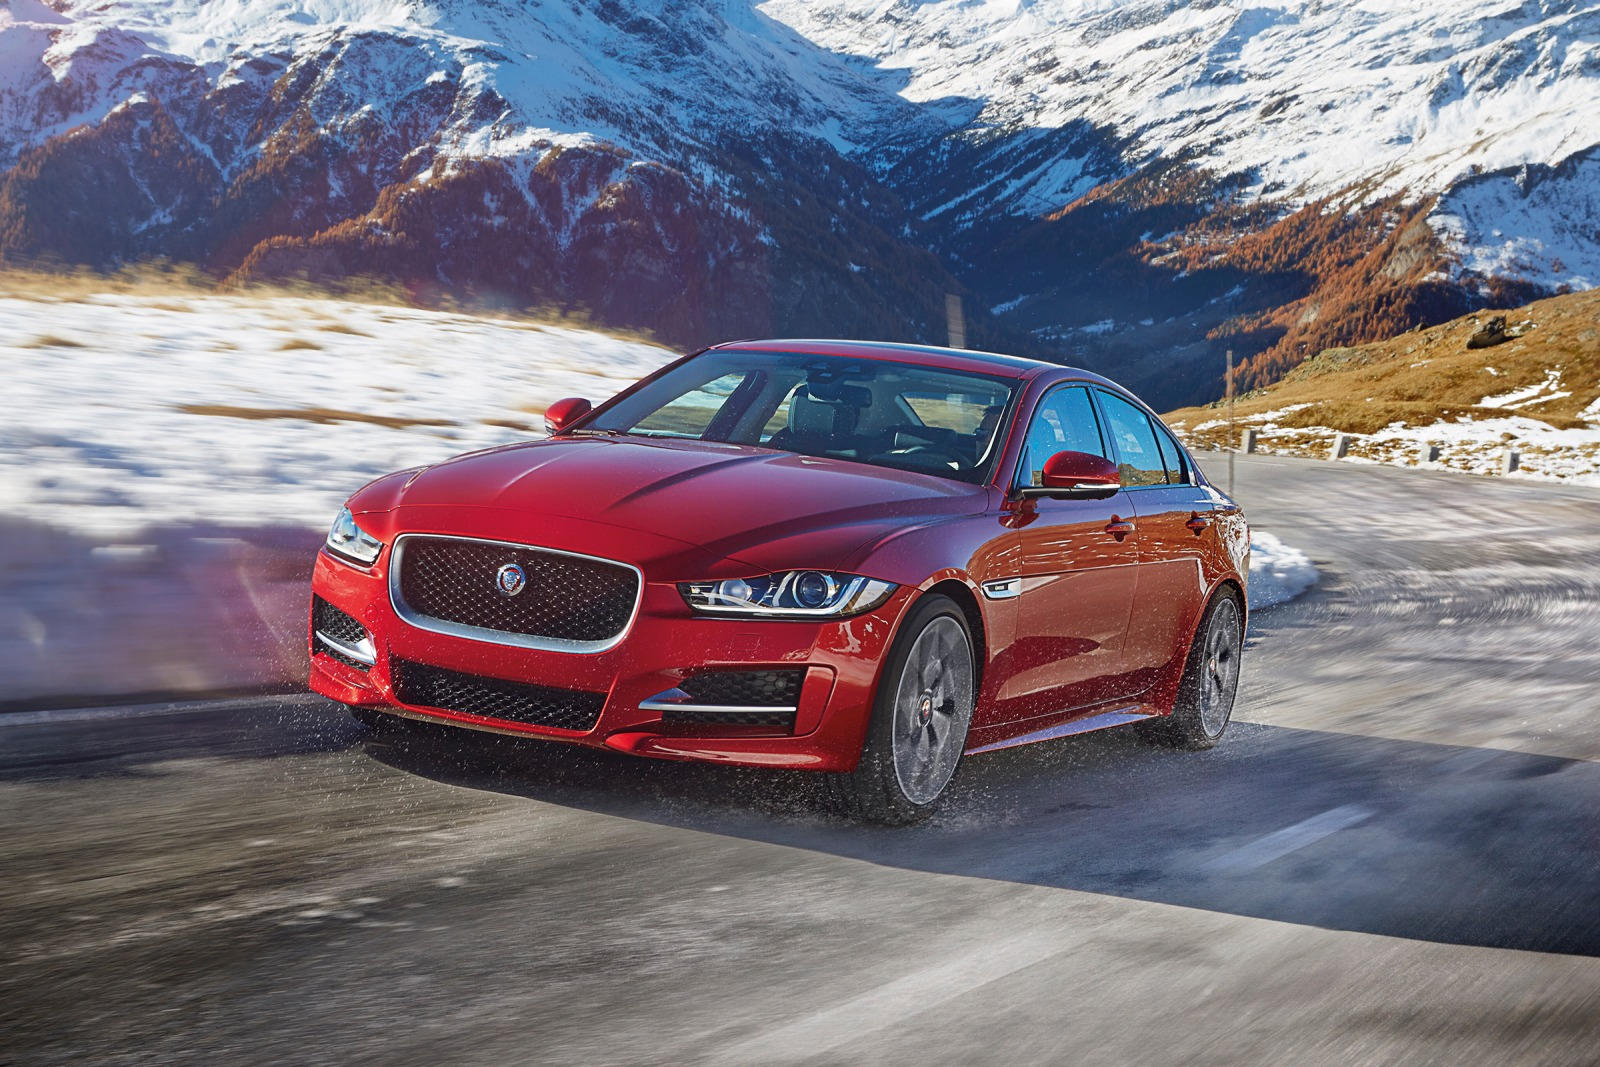 ftype hd inr and priced upe images india androids price prices for in jaguar from crores car wallpaper awesome